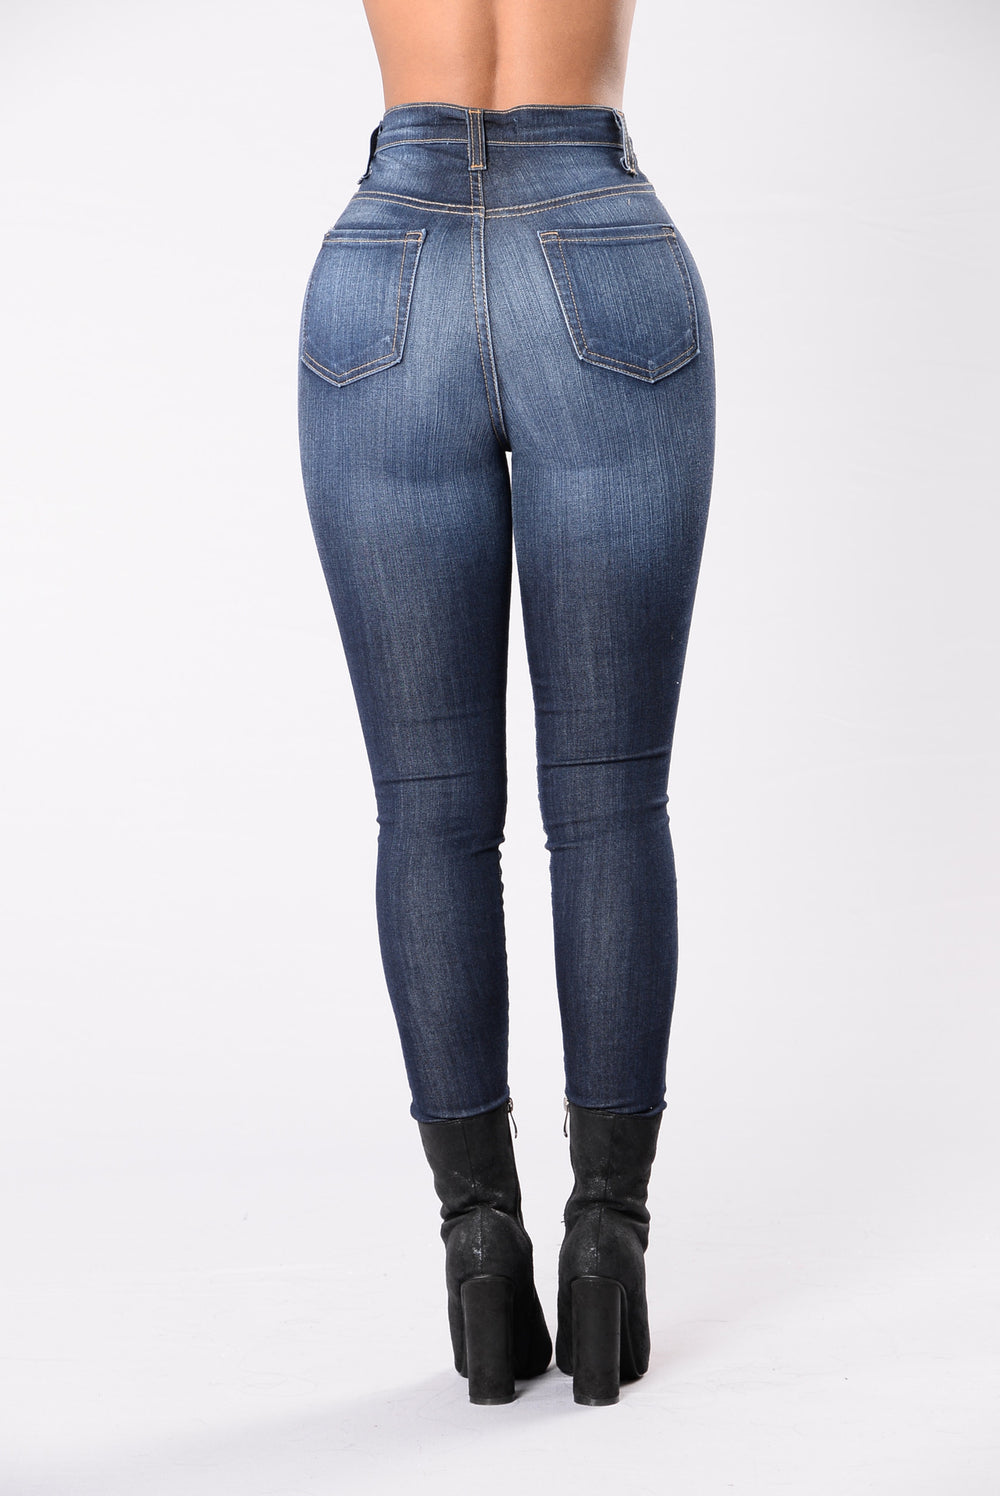 Kenzie Jeans - Dark Wash